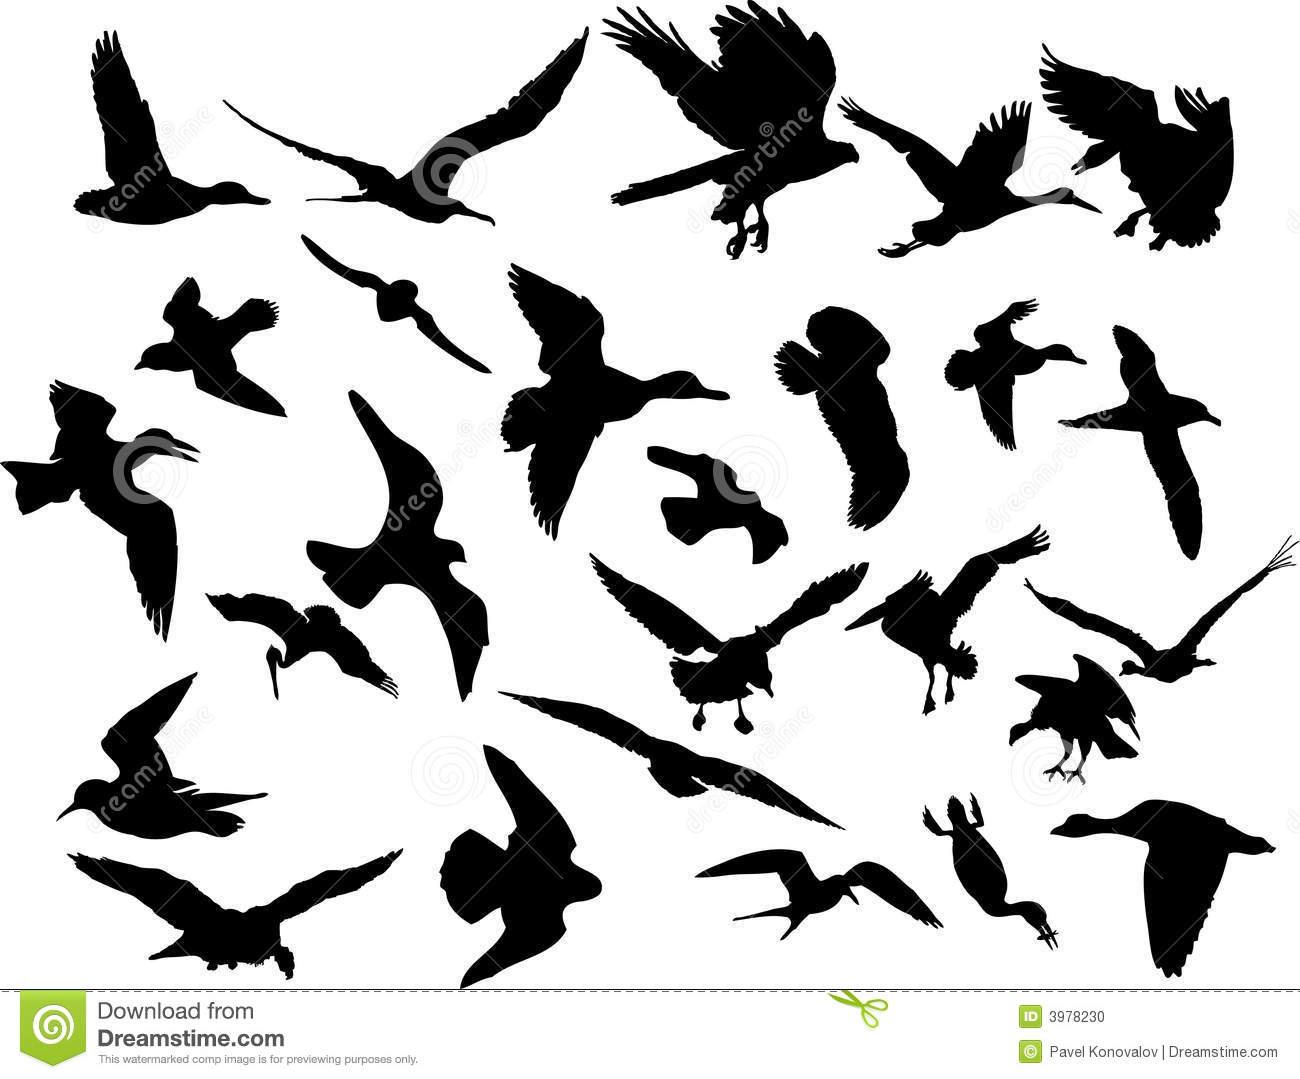 Set Of Sketches Of Butterflies Download Royalty Free Vector File Eps moreover Bull Cartoon moreover Black Raven Drawn In Sketch Style Download Royalty Free Vector File Eps as well Duck Drawings together with Cartoon Ostrich. on black animal outlines